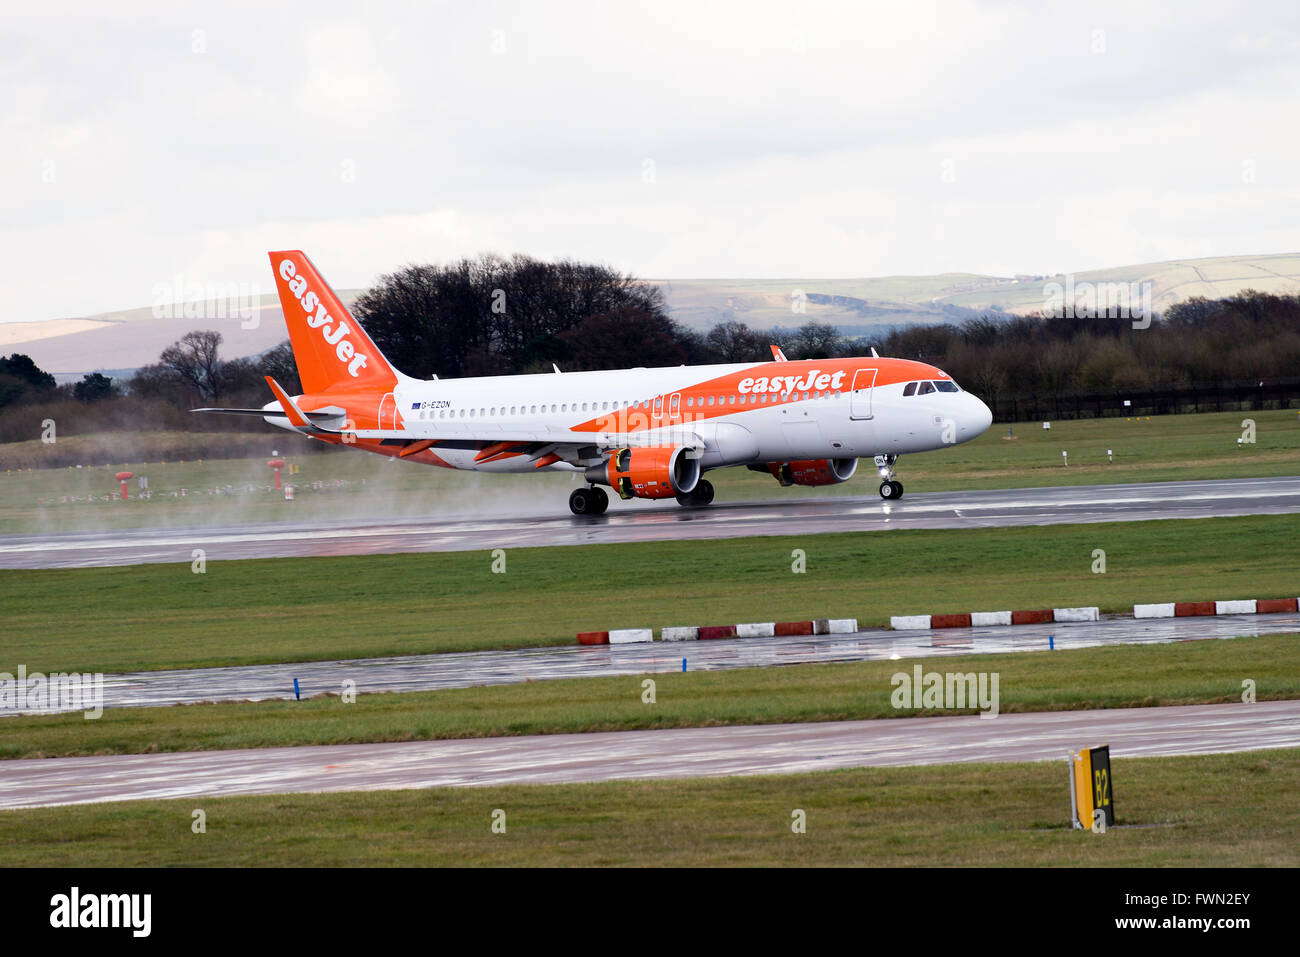 easyJet Airbus A320-214 Airliner G-EZON Landing on Arrival at Manchester International Airport England United KingdomStock Photo